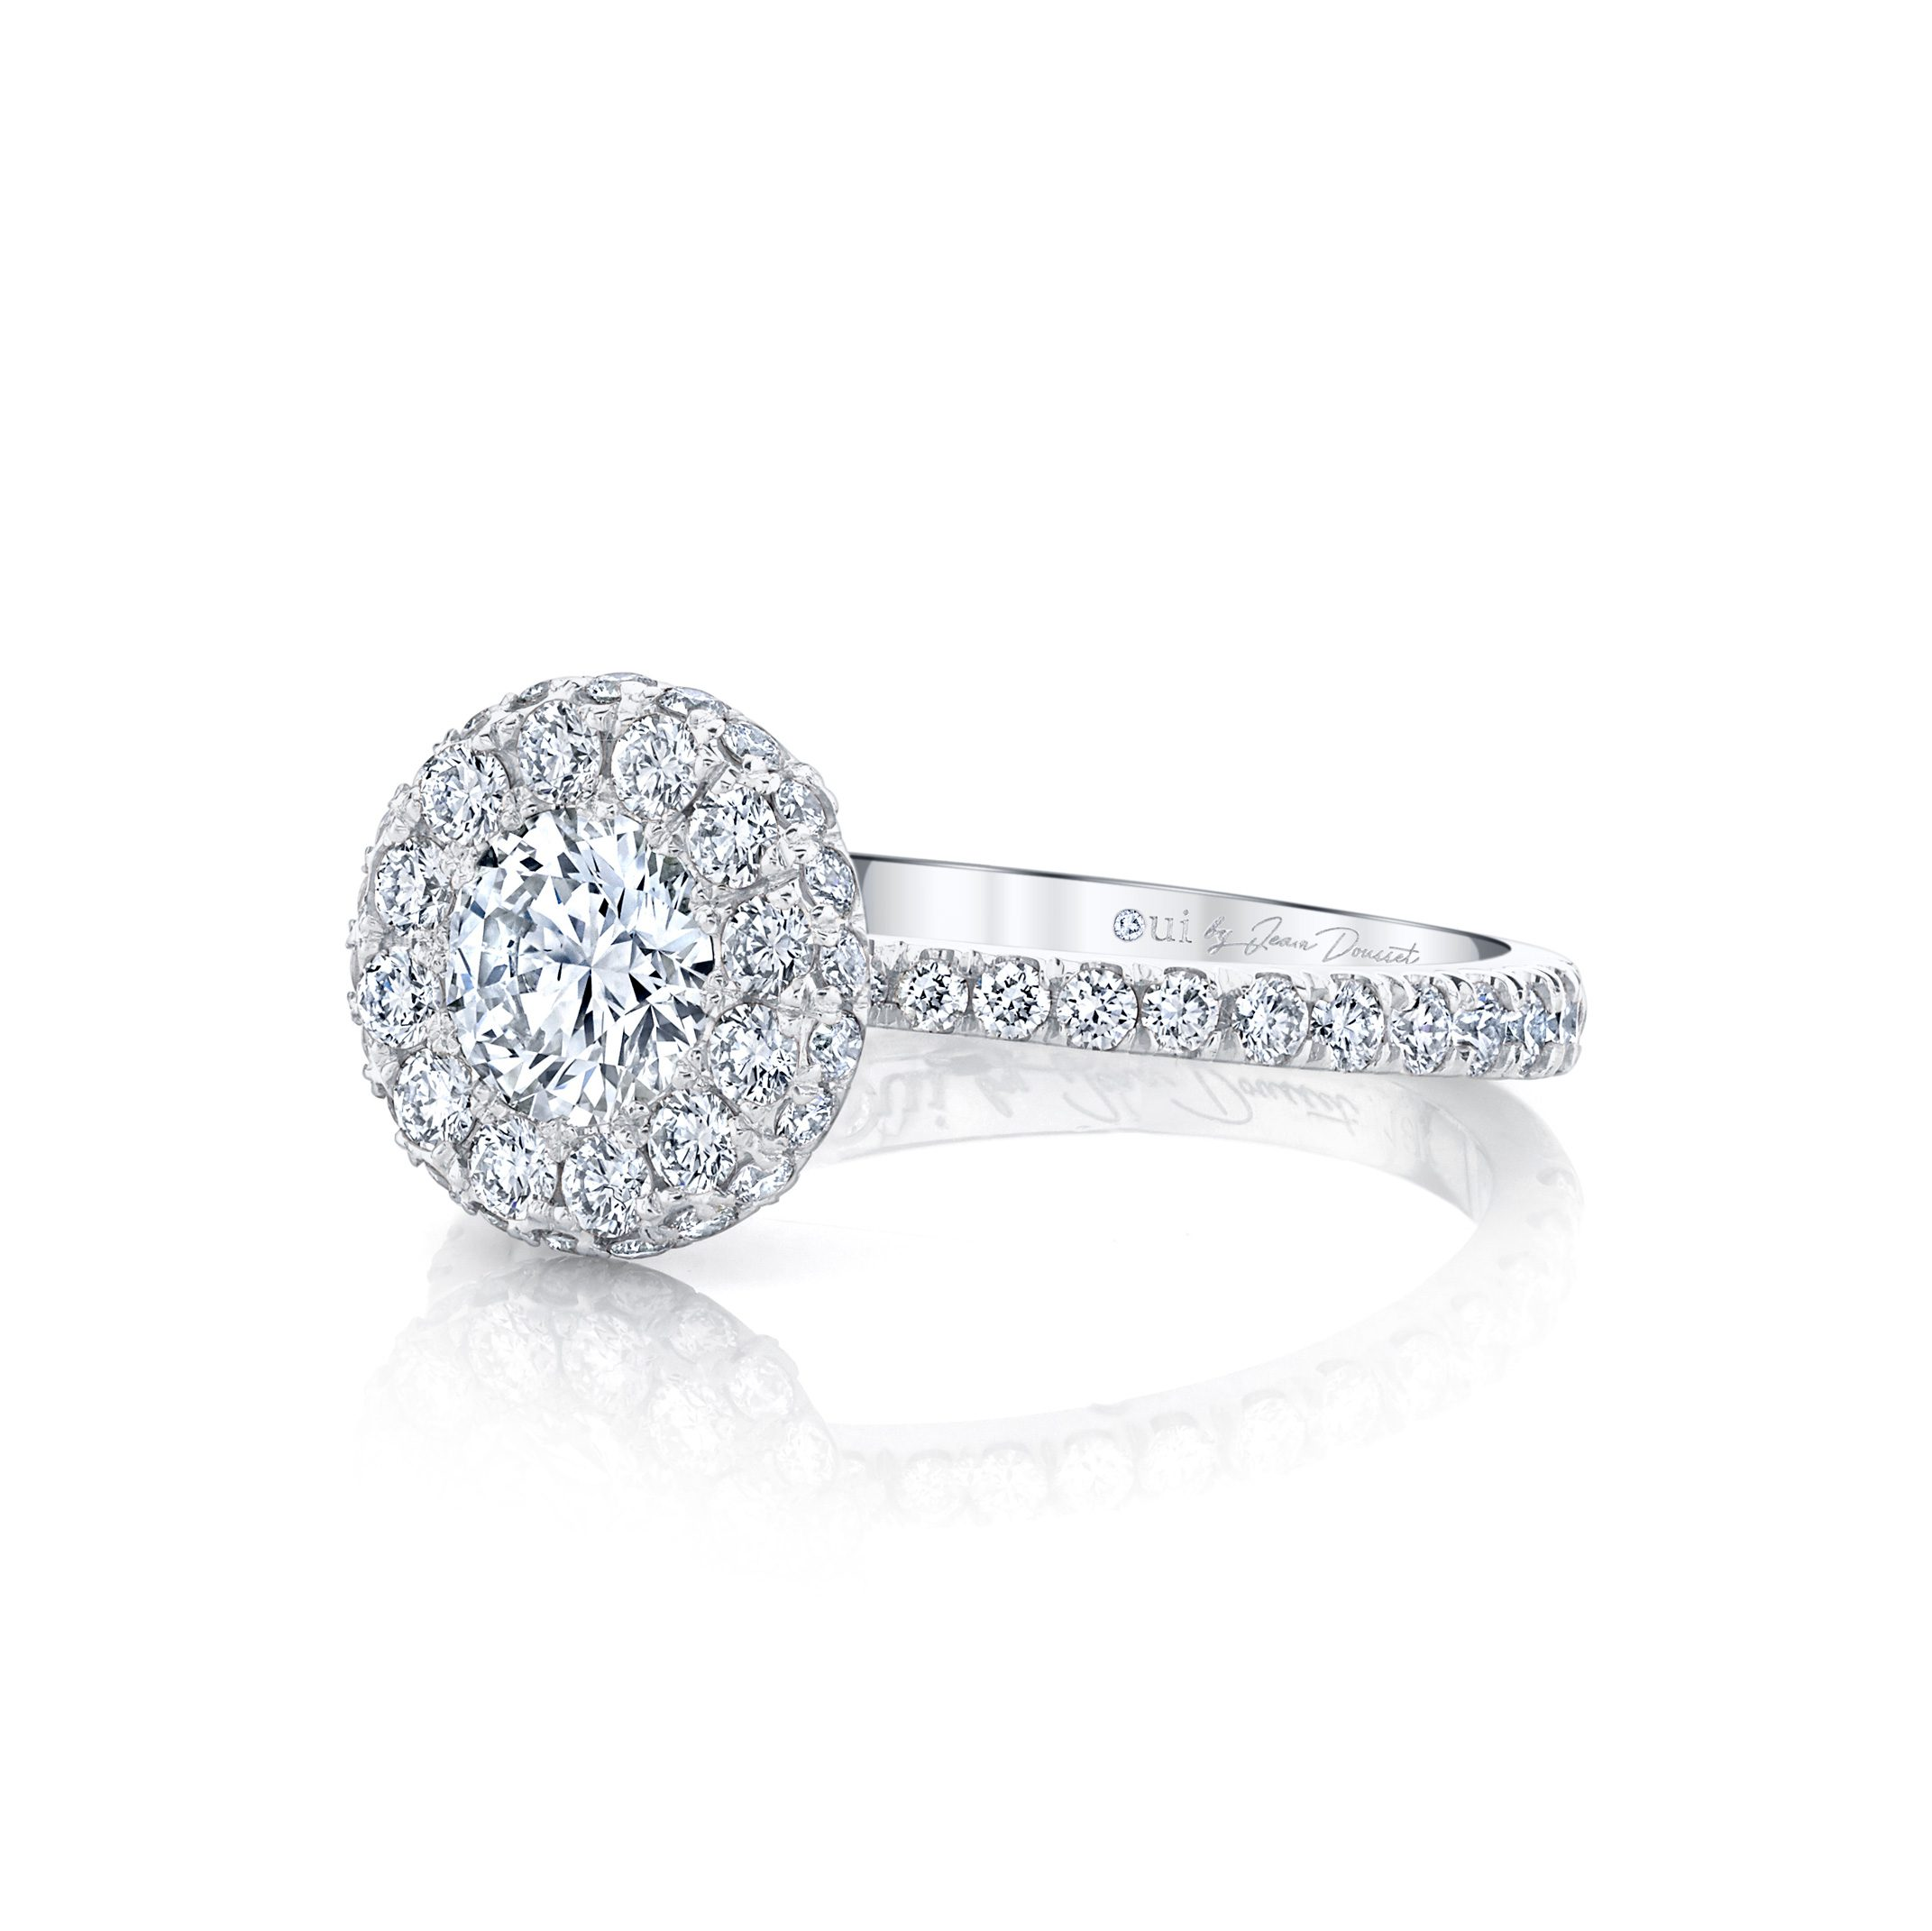 Eloise Round Brilliant Seamless Halo® Engagement Ring with diamond pavé in 18k White Gold Side View by Oui by Jean Dousset